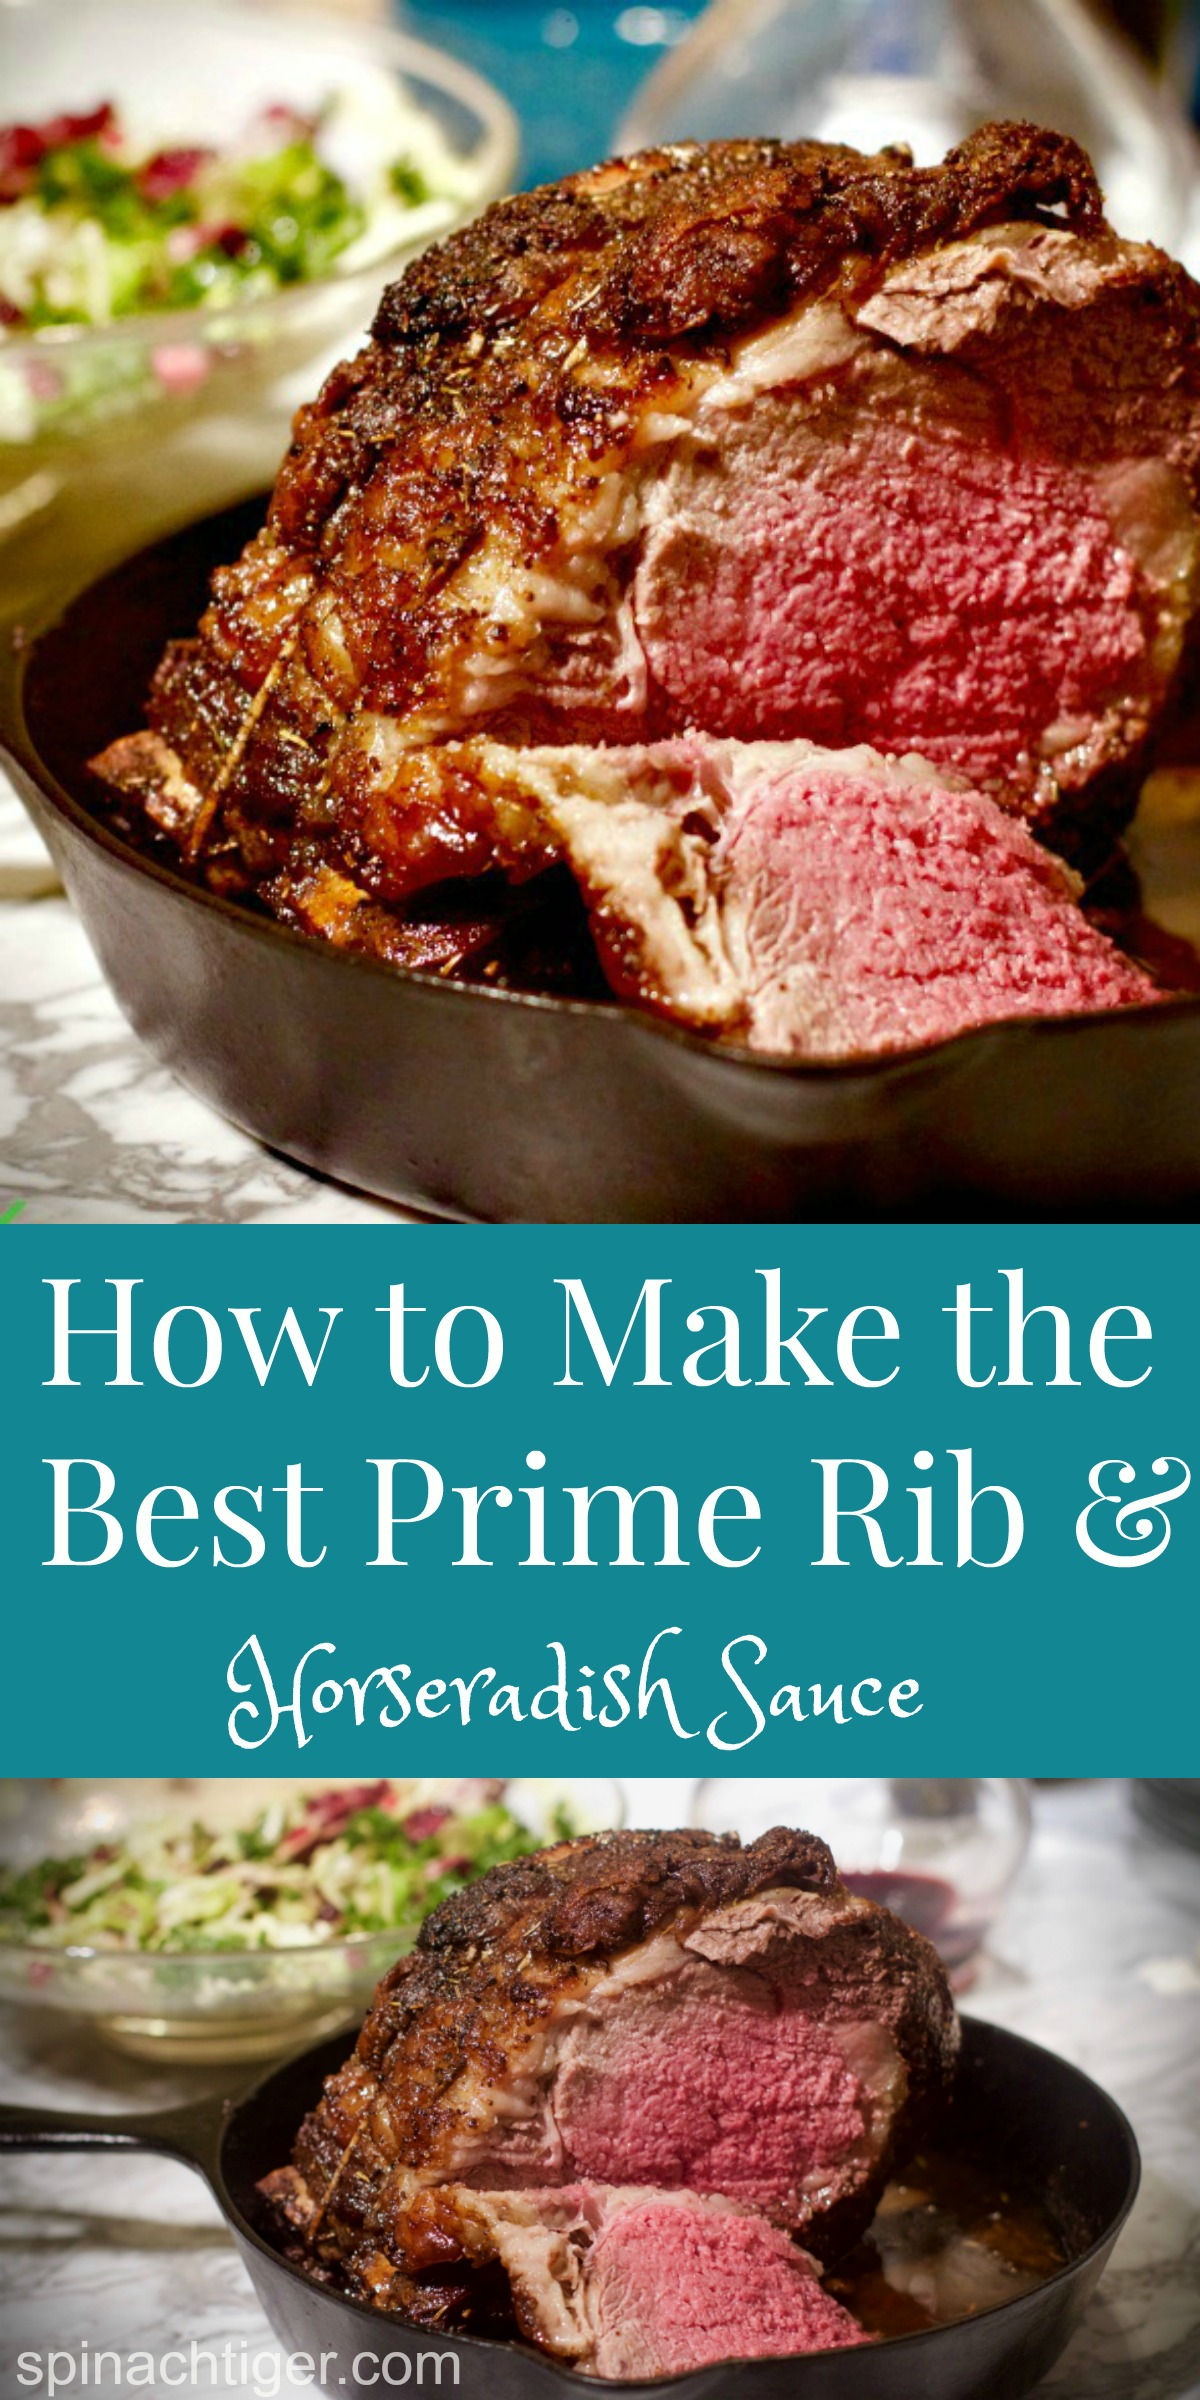 Make the best Prime rib in 2 1/2 hours. First, Dry age in your refrigerator for 7 days. Make Horseradish sauce. #primerib #spinachtiger #dryagemeat #primeribeofbeef #christmasdinner via @angelaroberts